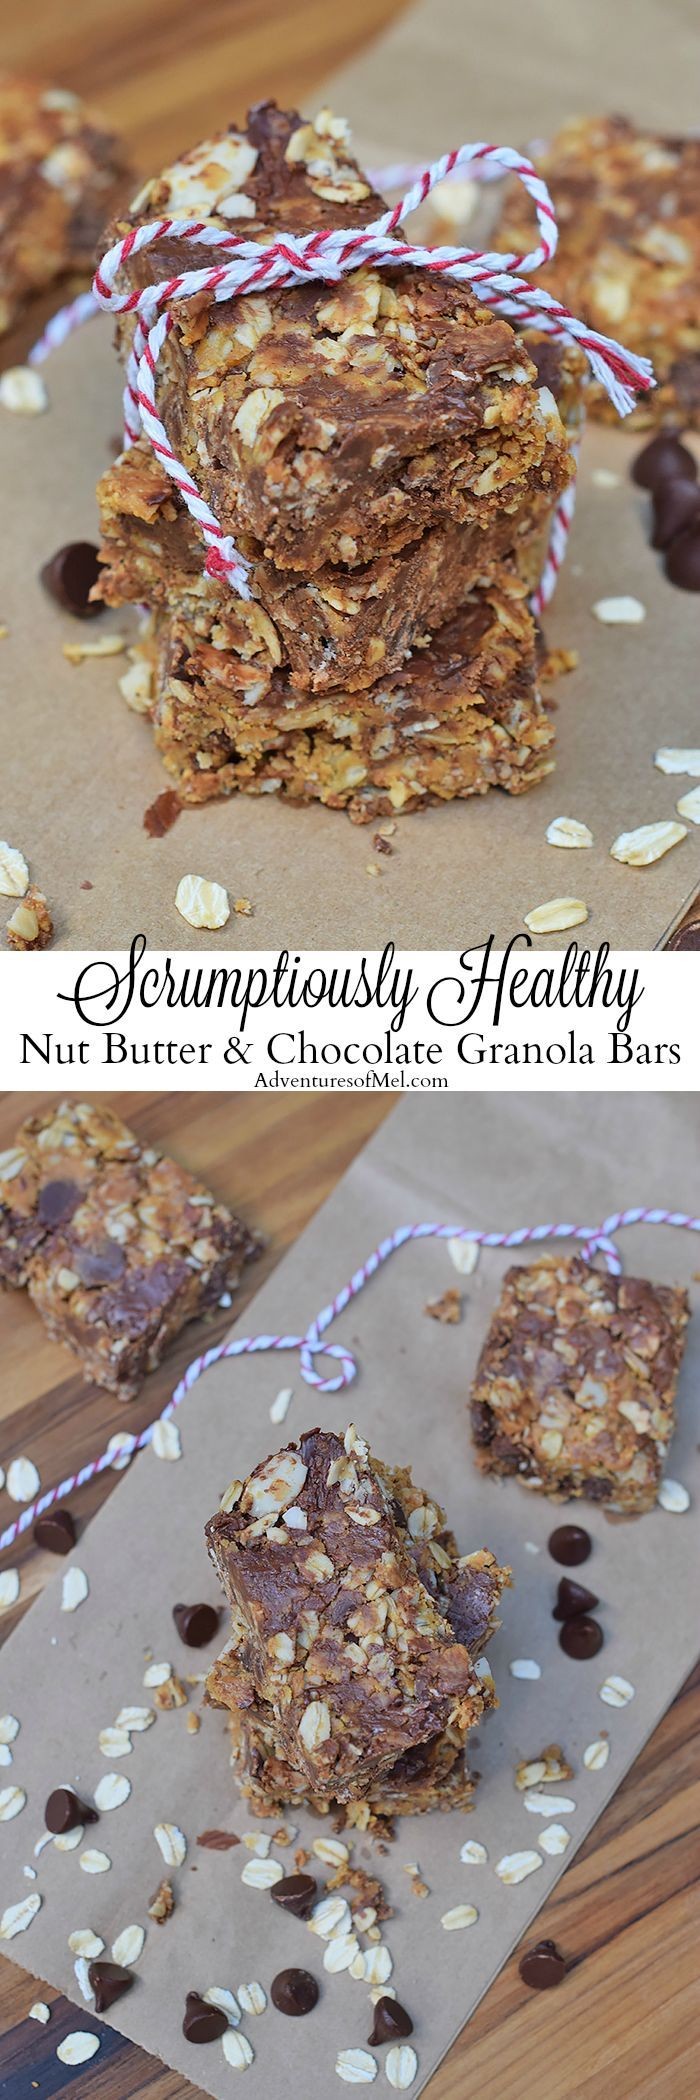 Healthy doesn't equal expensive or difficult. No-Bake Nut Butter and Chocolate Granola Bars are healthy snacks, filled with ingredients you may already have in your kitchen. Grab the easy recipe for these scrumptious treats! #homemade #granolabars #nobake #chocolate #healthyeating #peanutbutter